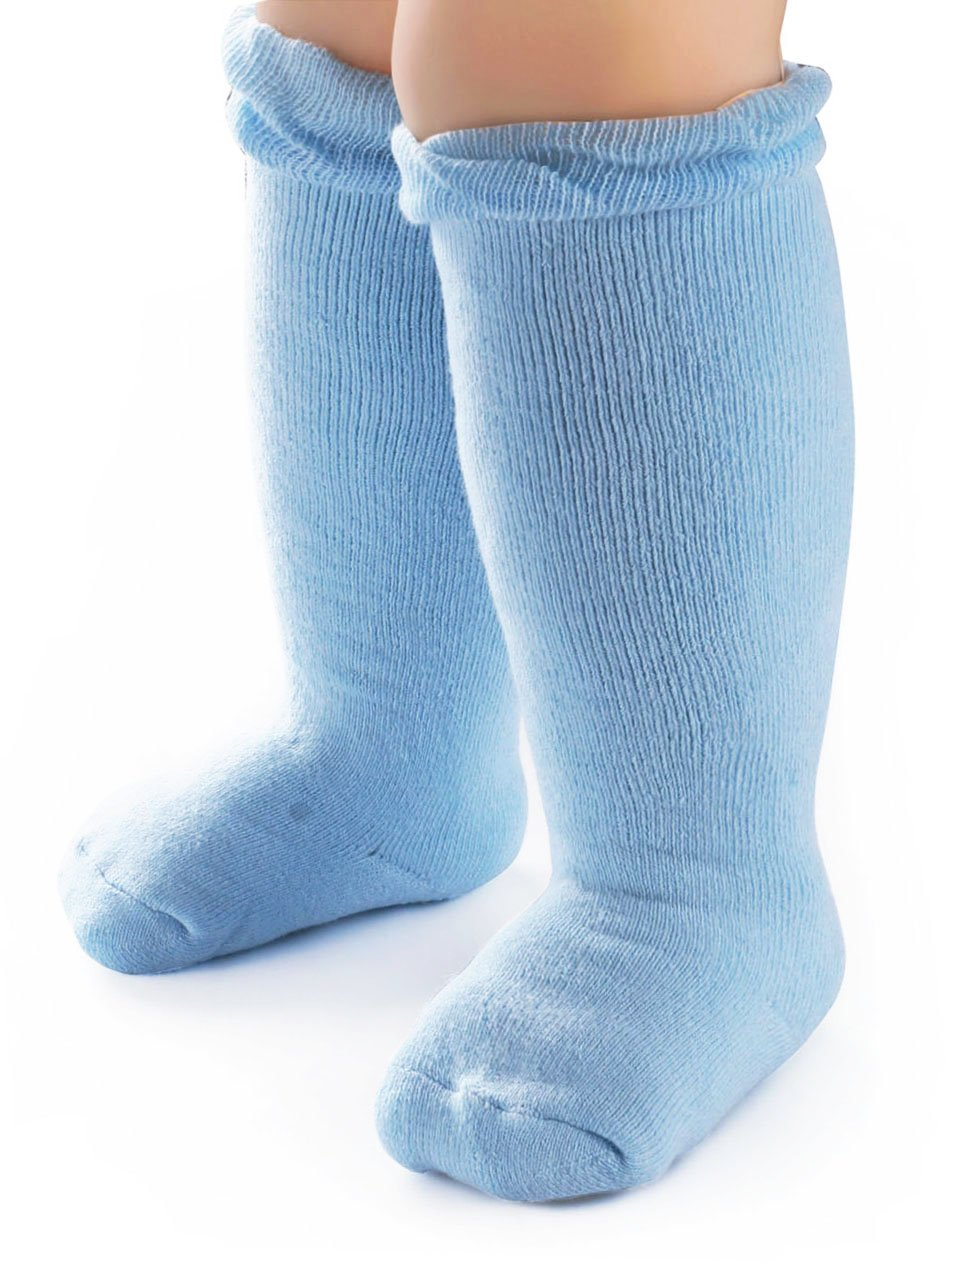 BabaMate 2 Pairs Winter Terry Cotton Baby Knee High Socks - Thick Warm Newborn Knee Socks for Toddler Boys Girls - Blue Grey